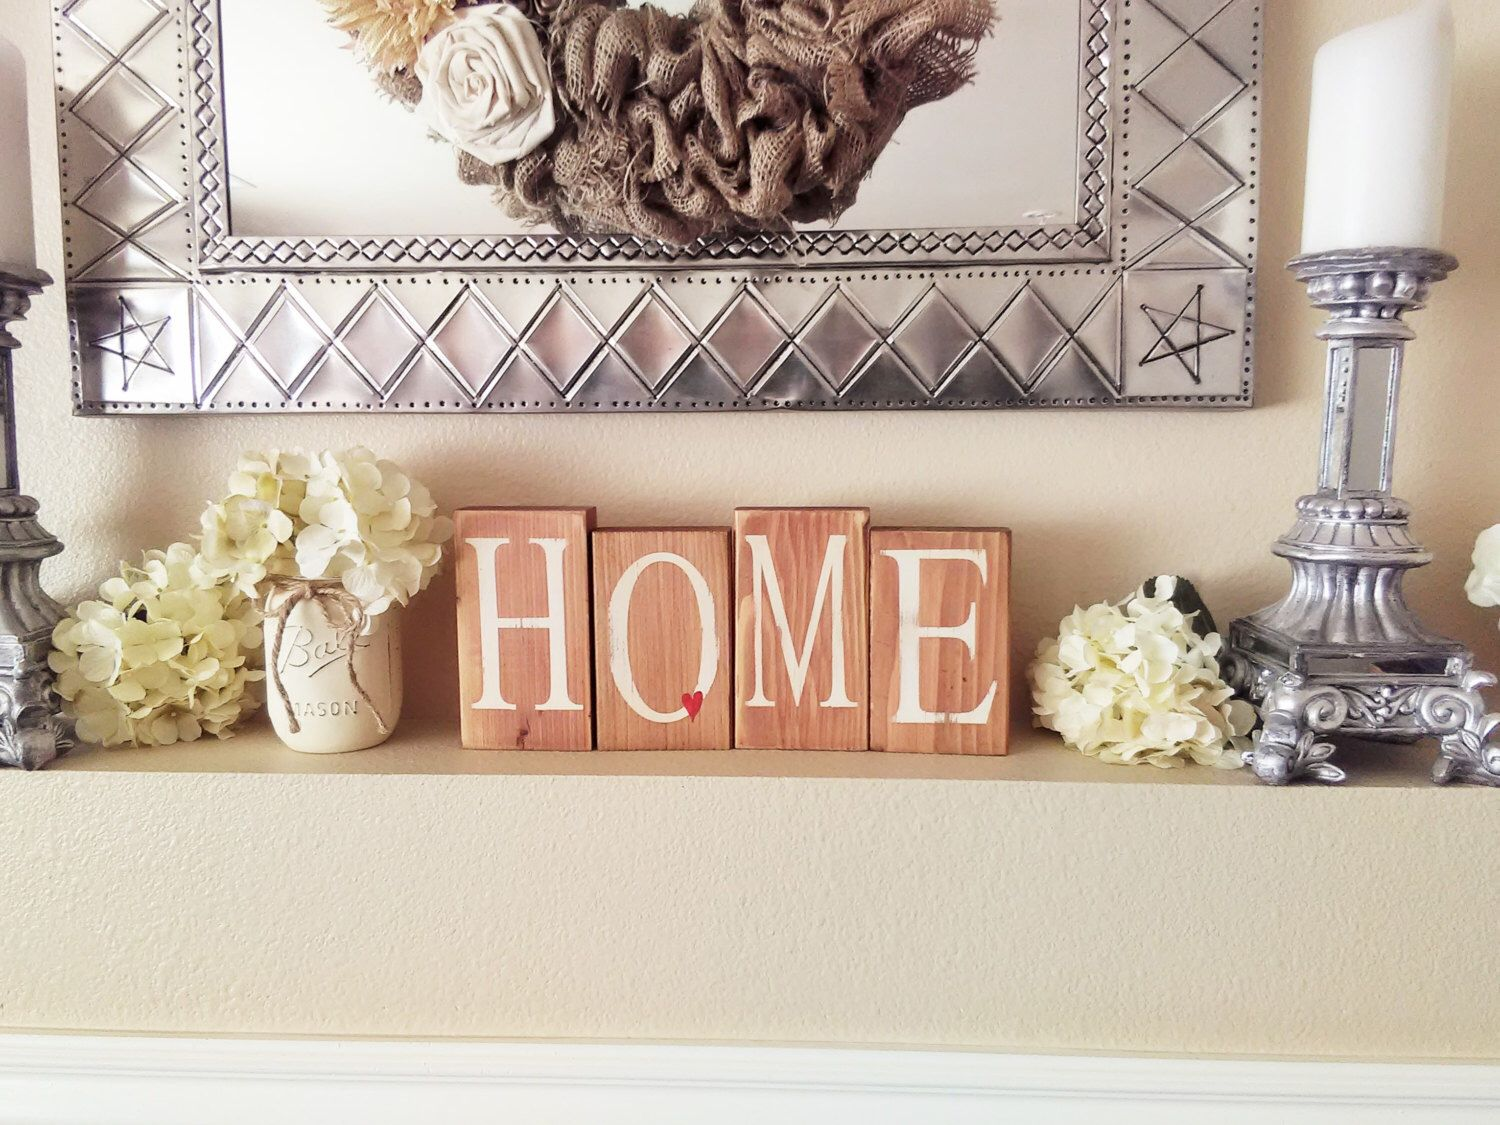 Home Sign, Wood Home Blocks, Distressed Home Decor, Home Decor, Rustic Wood Sign,Shelf Sitter Blocks,Hand Painted and Distressed Wood Blocks by CountryHomeandHeart on Etsy https://www.etsy.com/listing/289168581/home-sign-wood-home-blocks-distressed